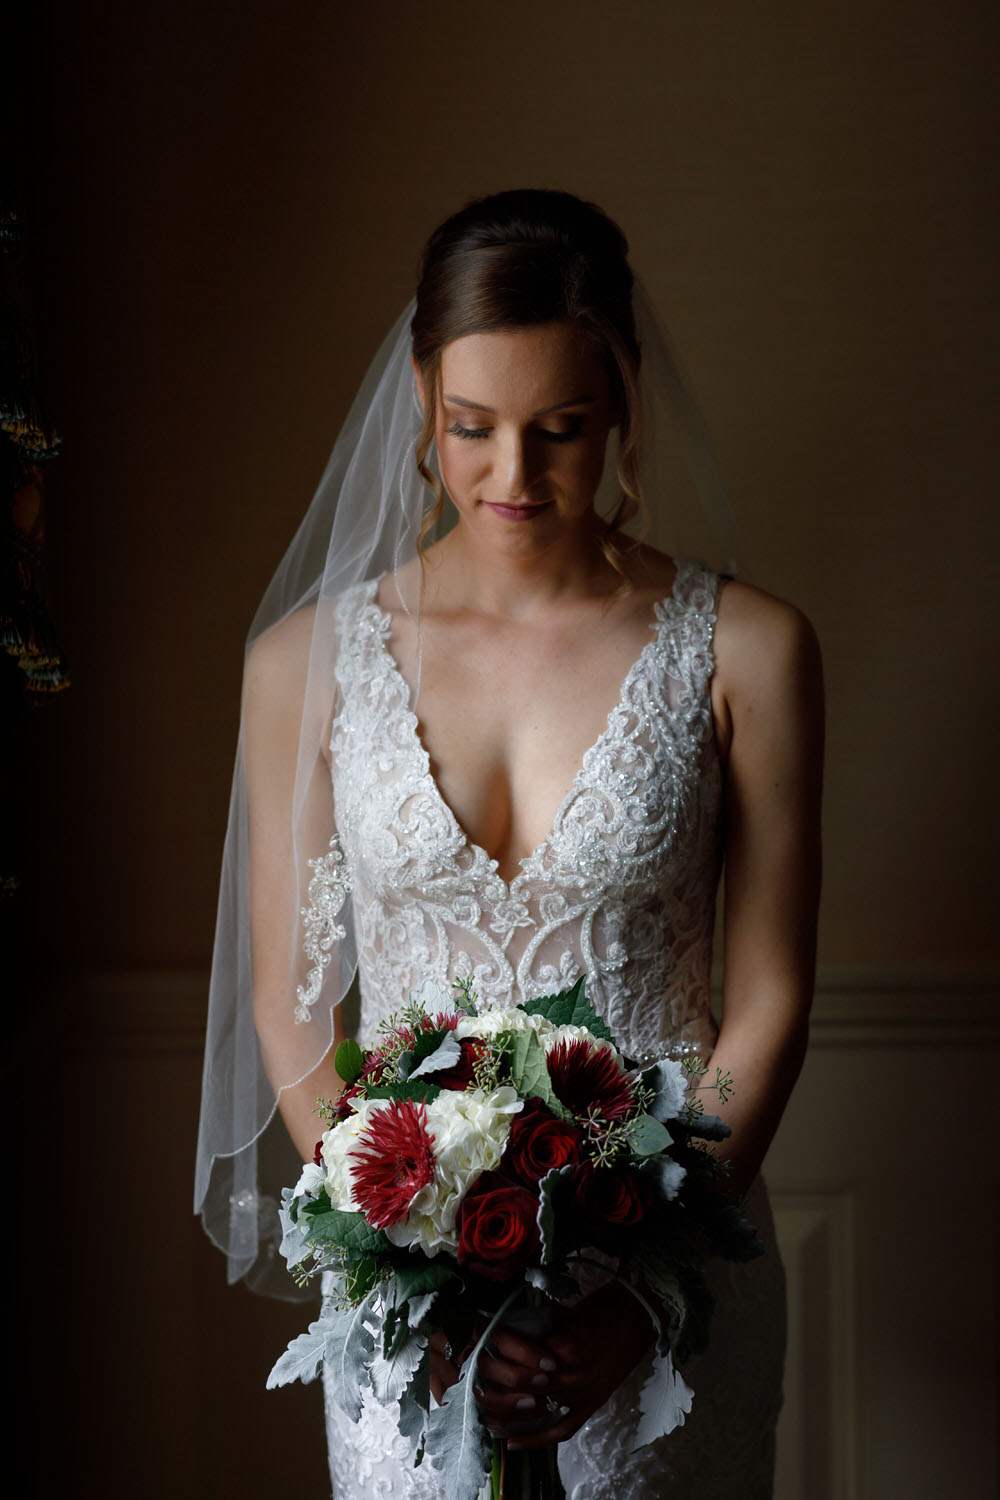 Beautiful Bride with window light holding wedding bouquet